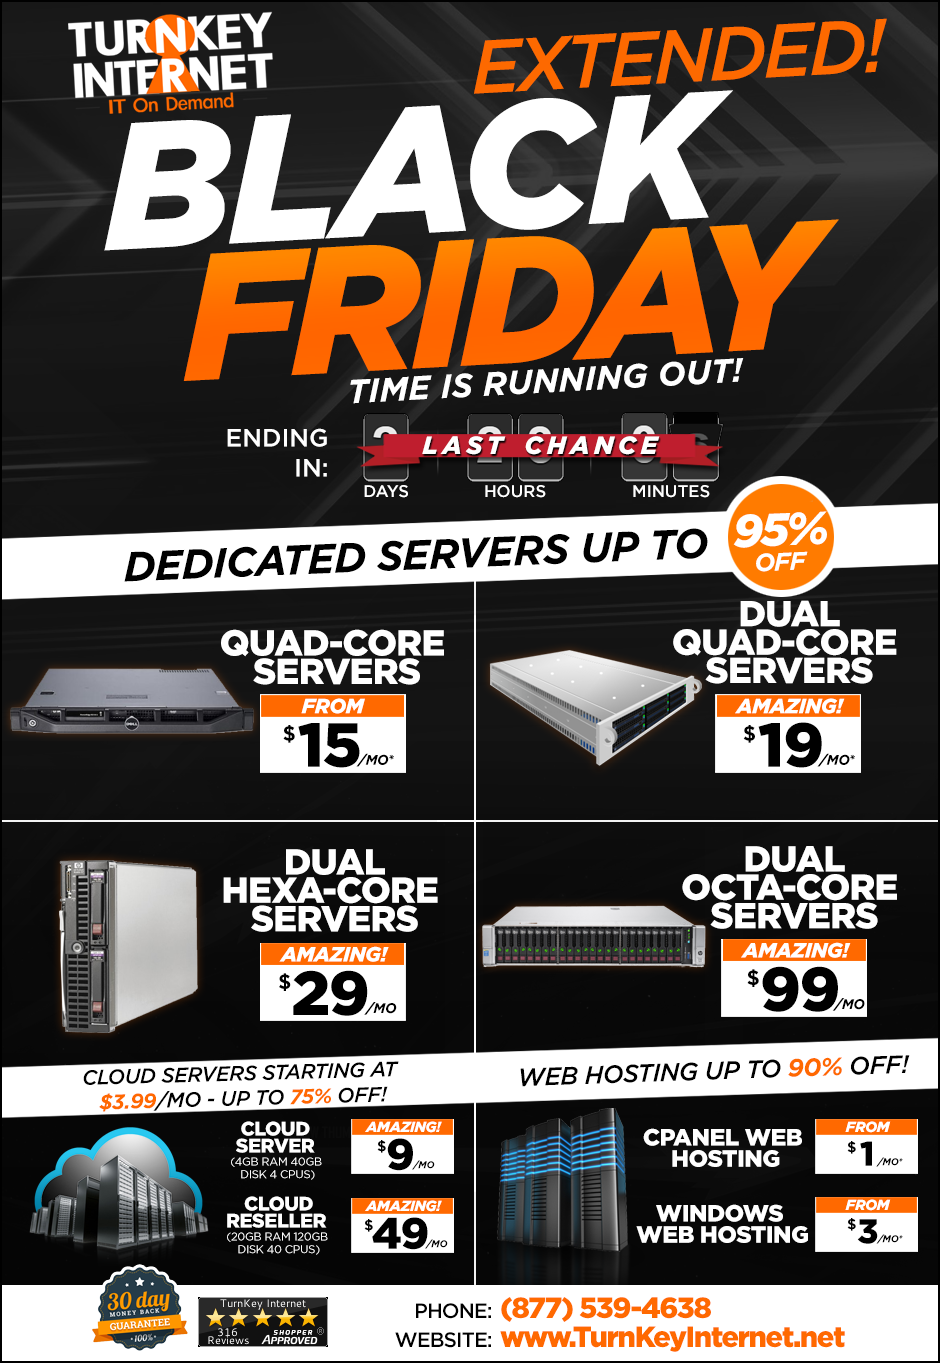 LAST CHANCE: TurnKey Internet Black Friday Deals!